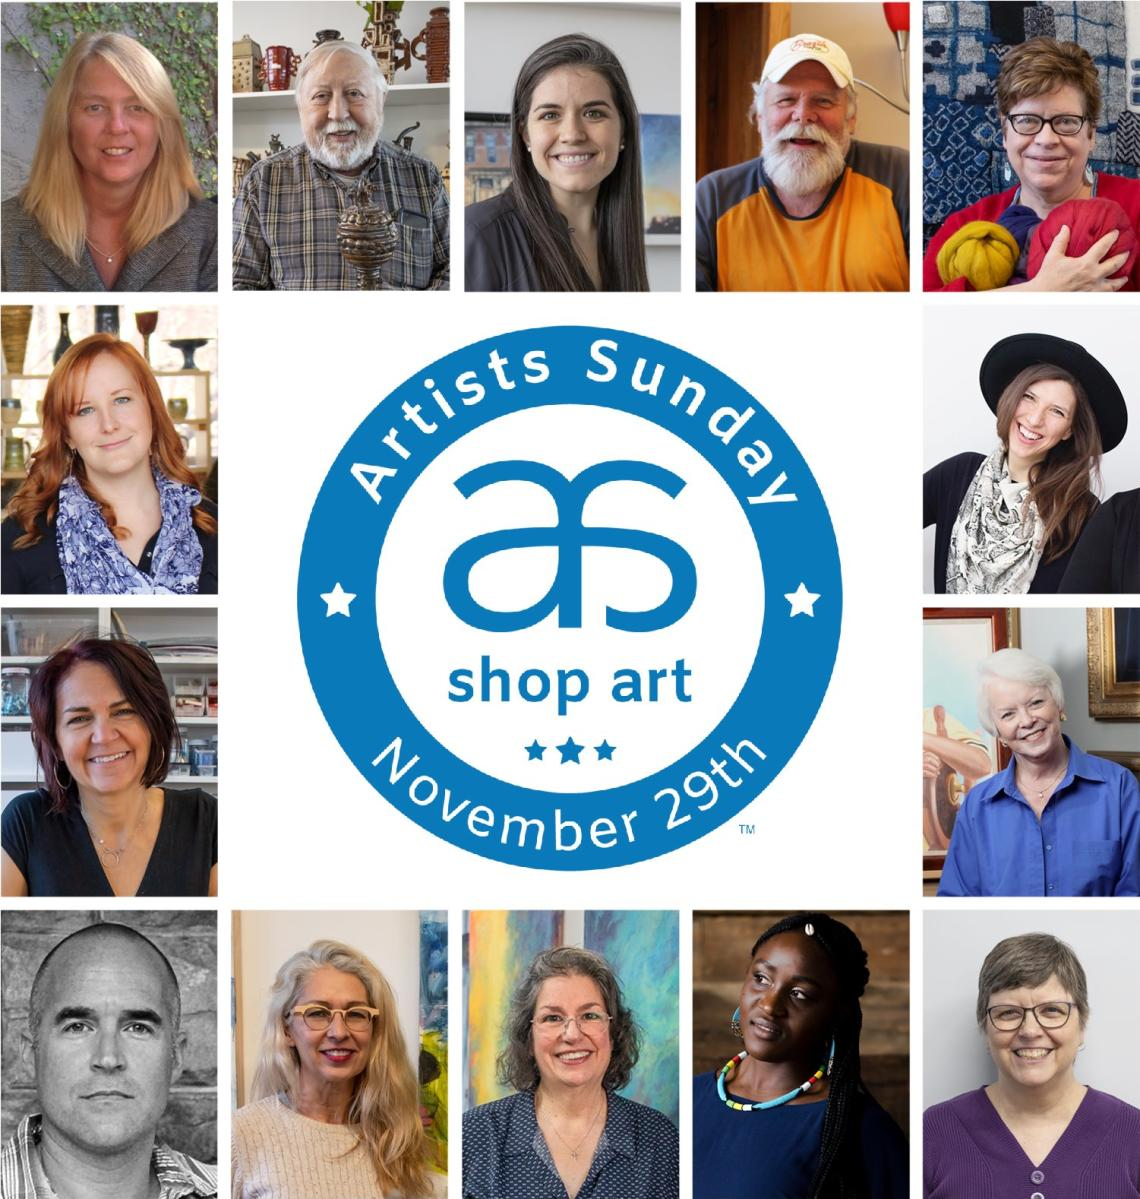 St Charles Foundry Artists Sunday Banner